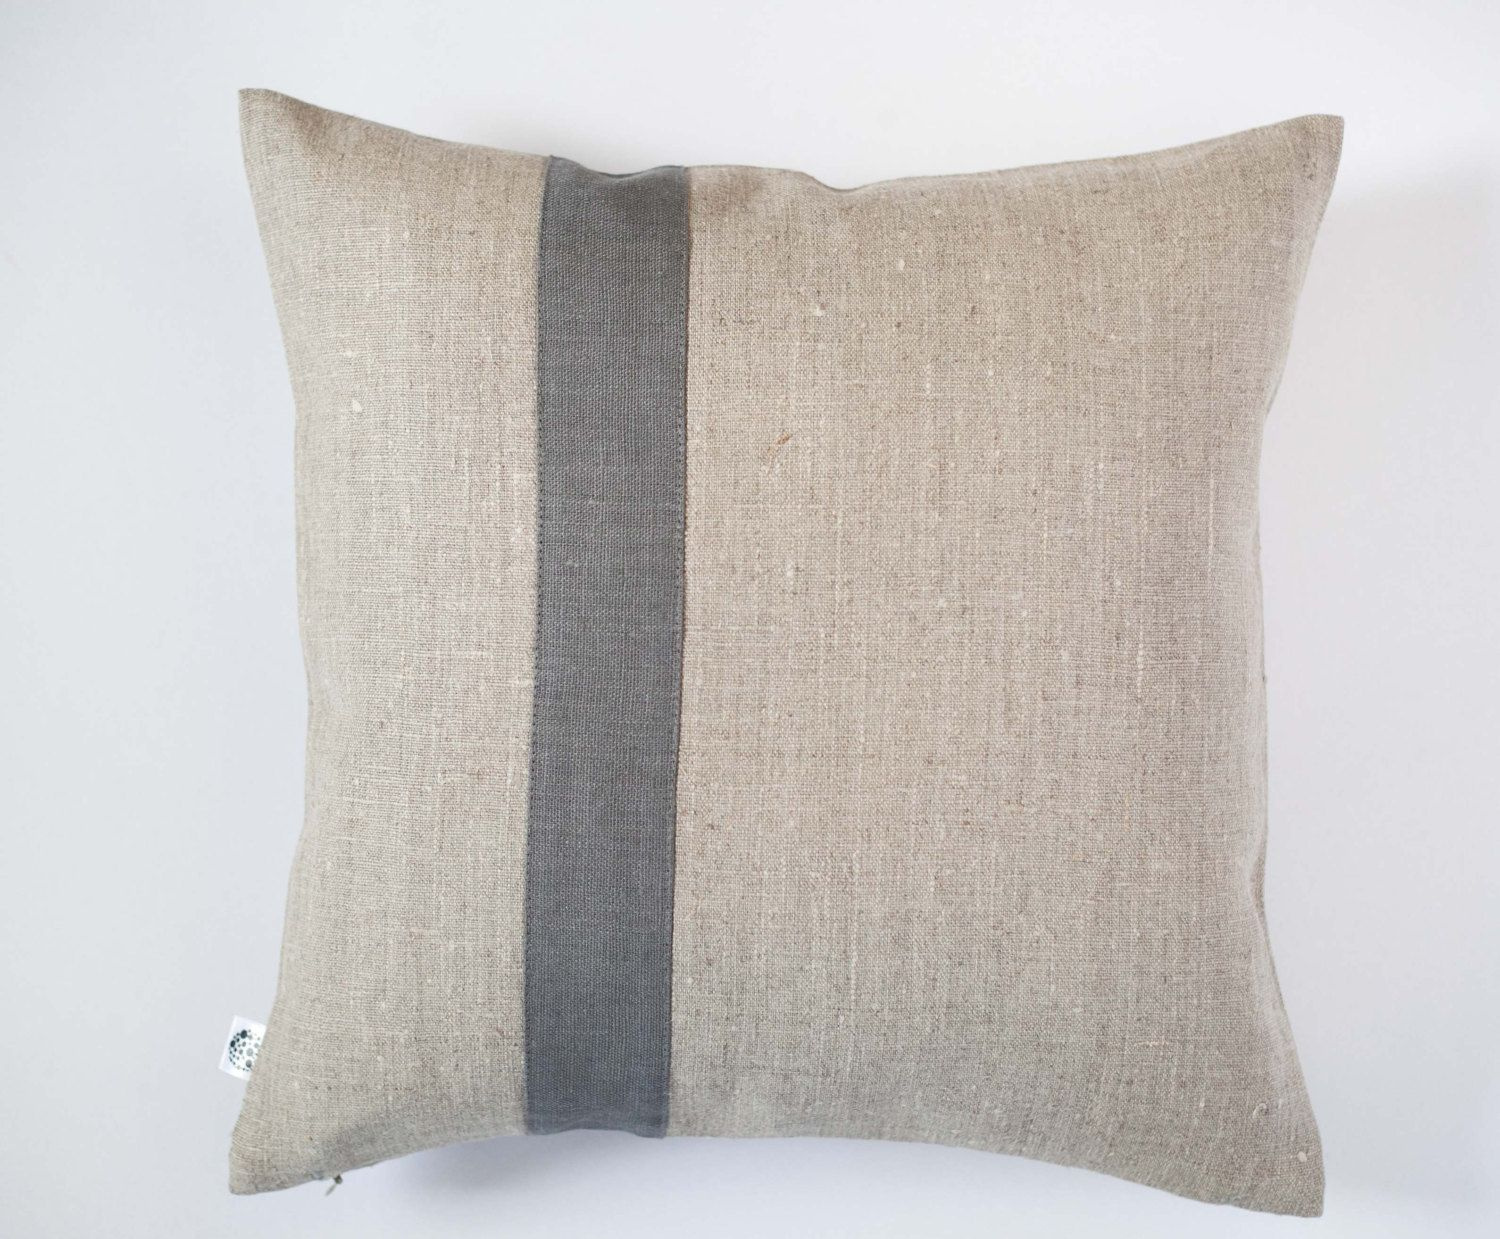 Natural Linen Pillowcase With Grey Line Accent Custom Size Available Pure Linen Cushion Cover Linen Pillow Cases Linen Pillows Linen Pillow Covers